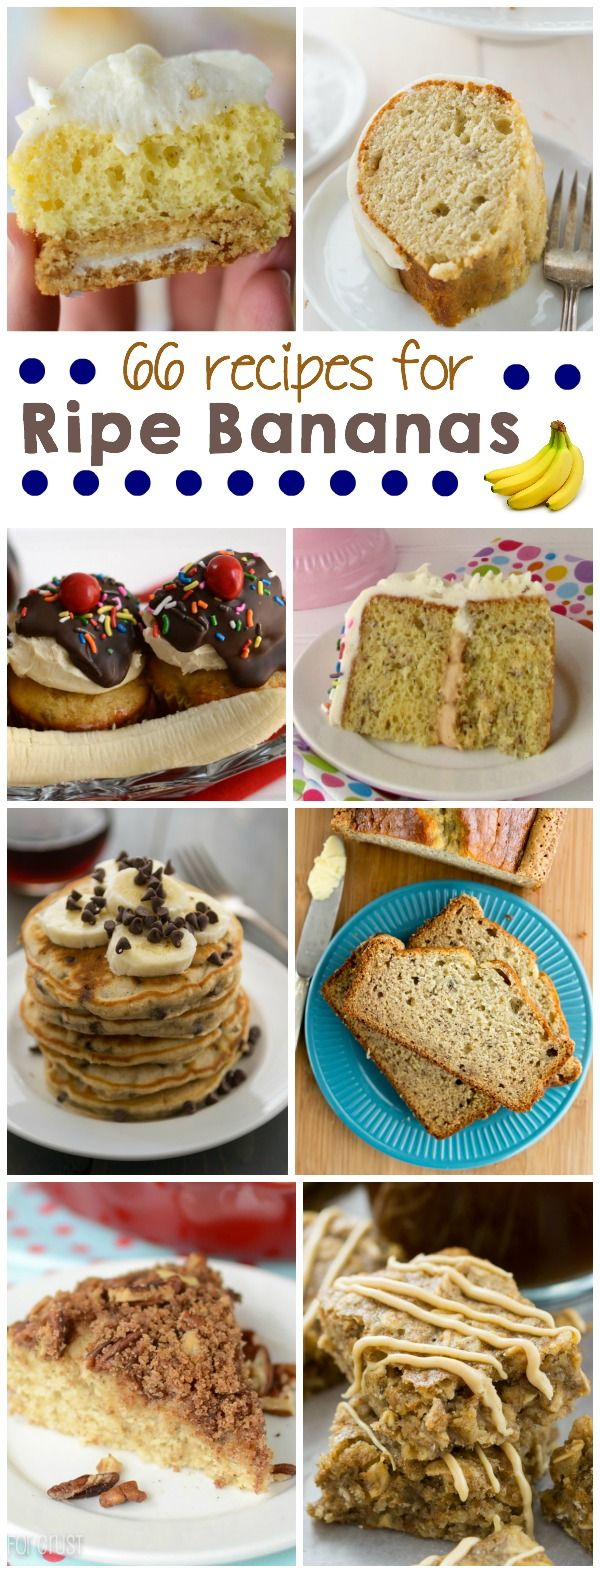 Find a recipe in this list of over 66 recipes using overripe bananas to use up the ones on your counter.